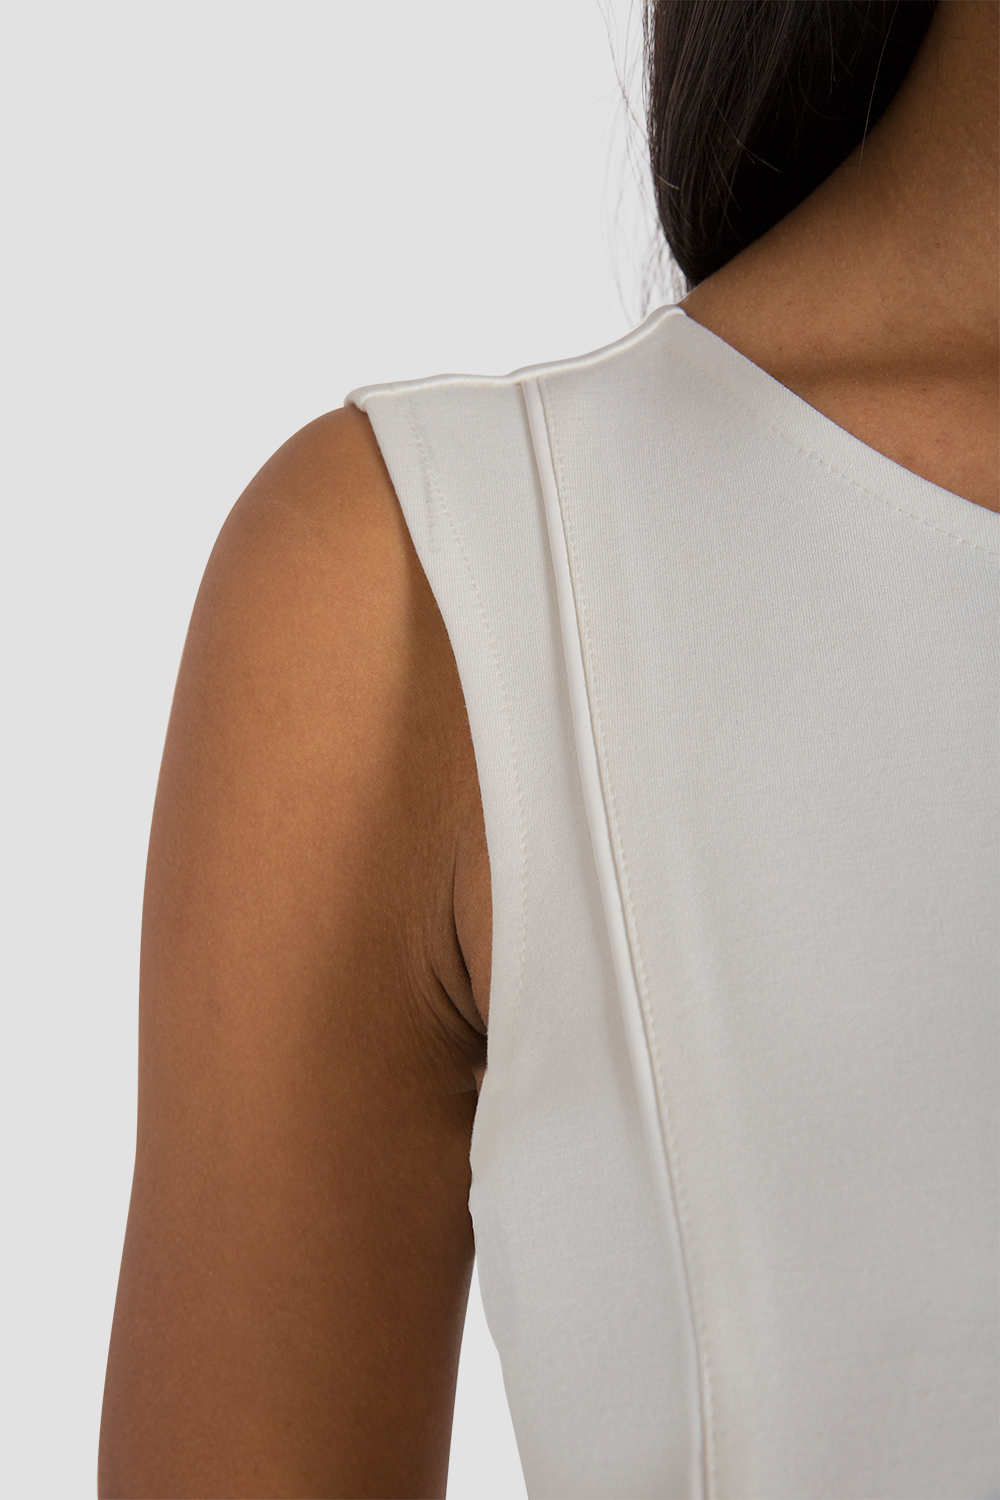 Women's Cropped White Ponte Sleeveless Shirt